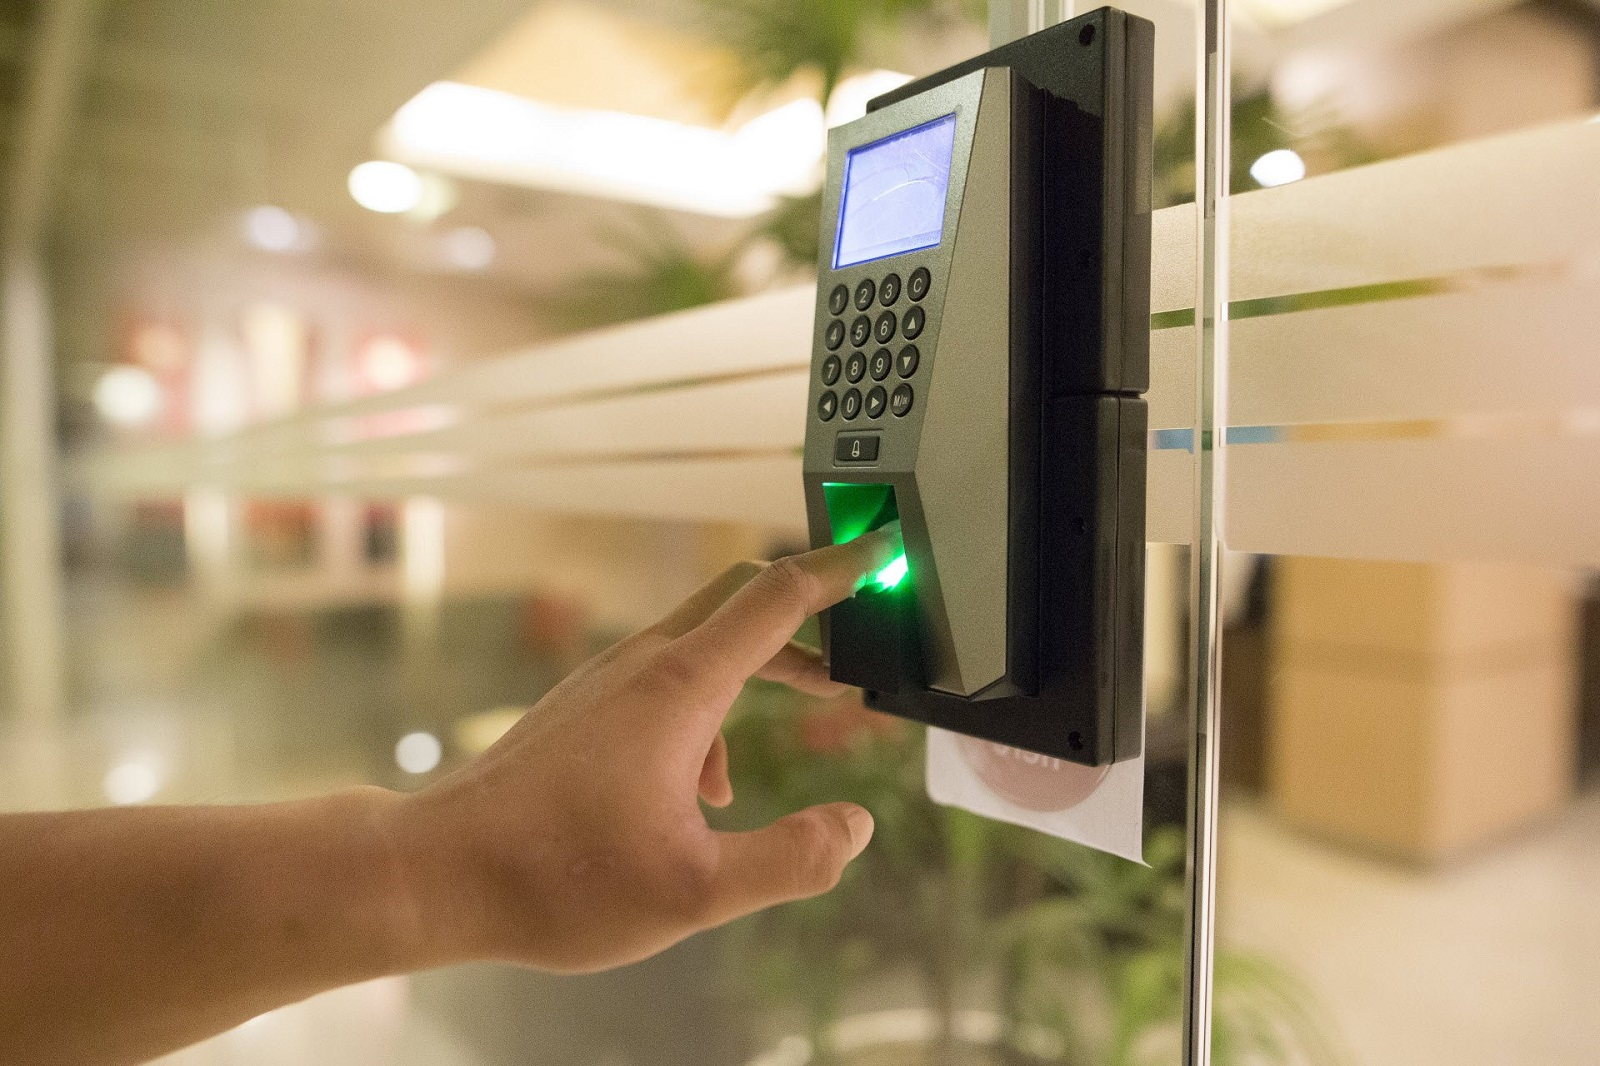 Top 3 tenders for the supply of access control systems in June